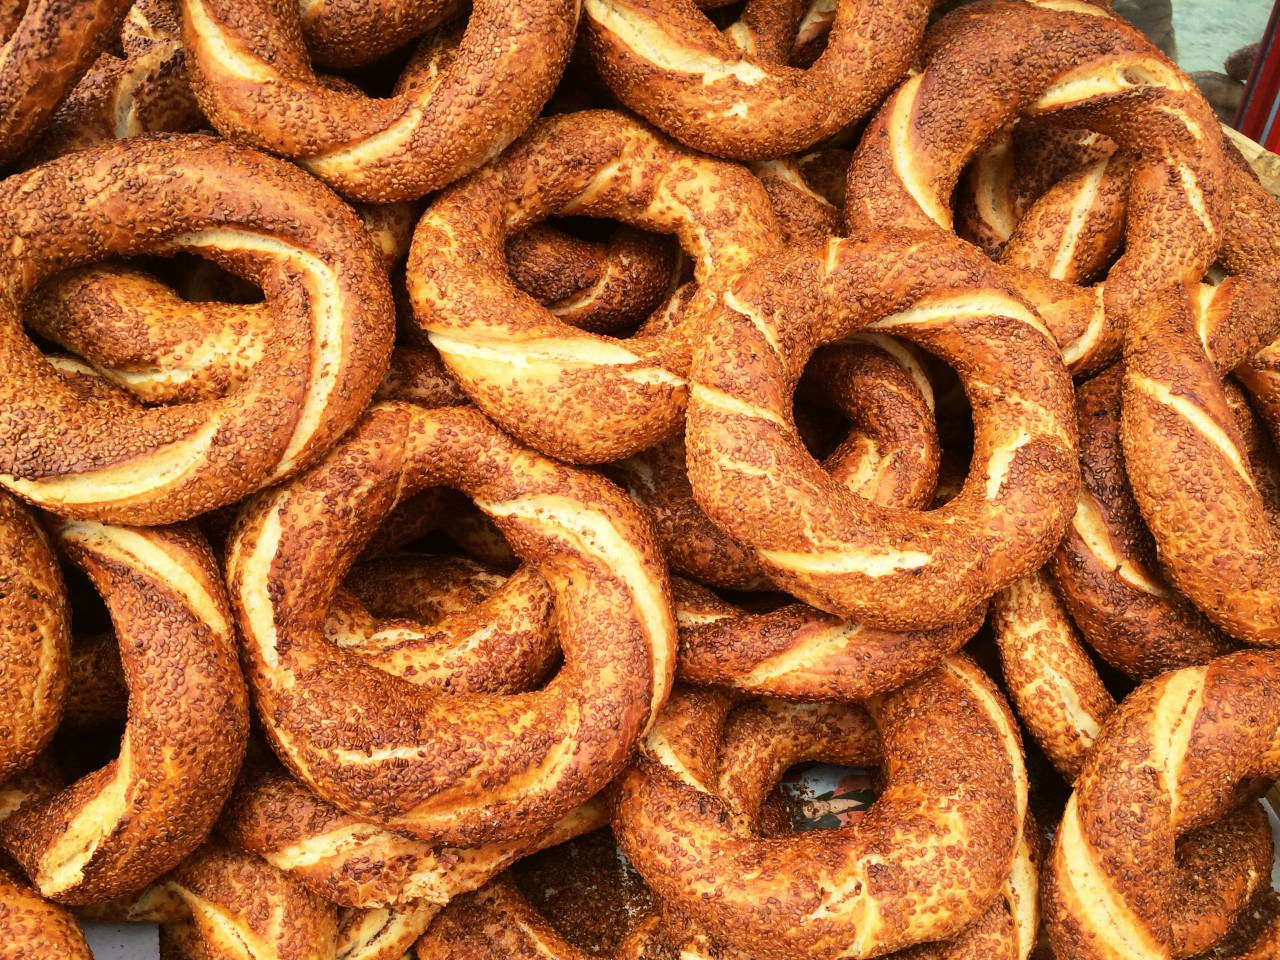 simit turkish circular bread